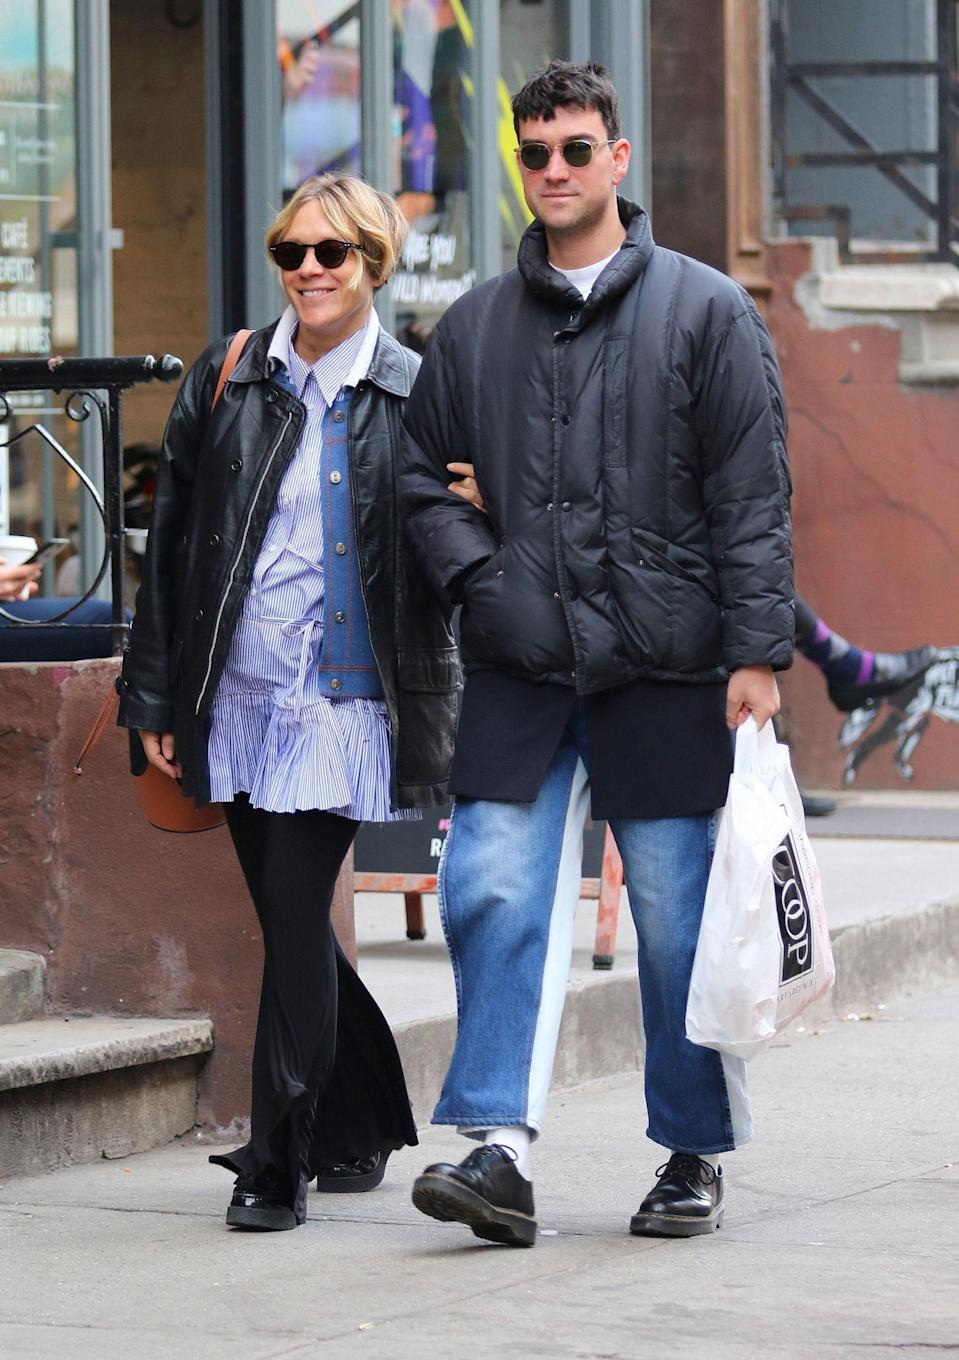 "<h1 class=""title"">Pregnant Chloe Sevigny and boyfriend Sinisa Mackovic are all smiles shopping for baby clothes in NYC</h1>"